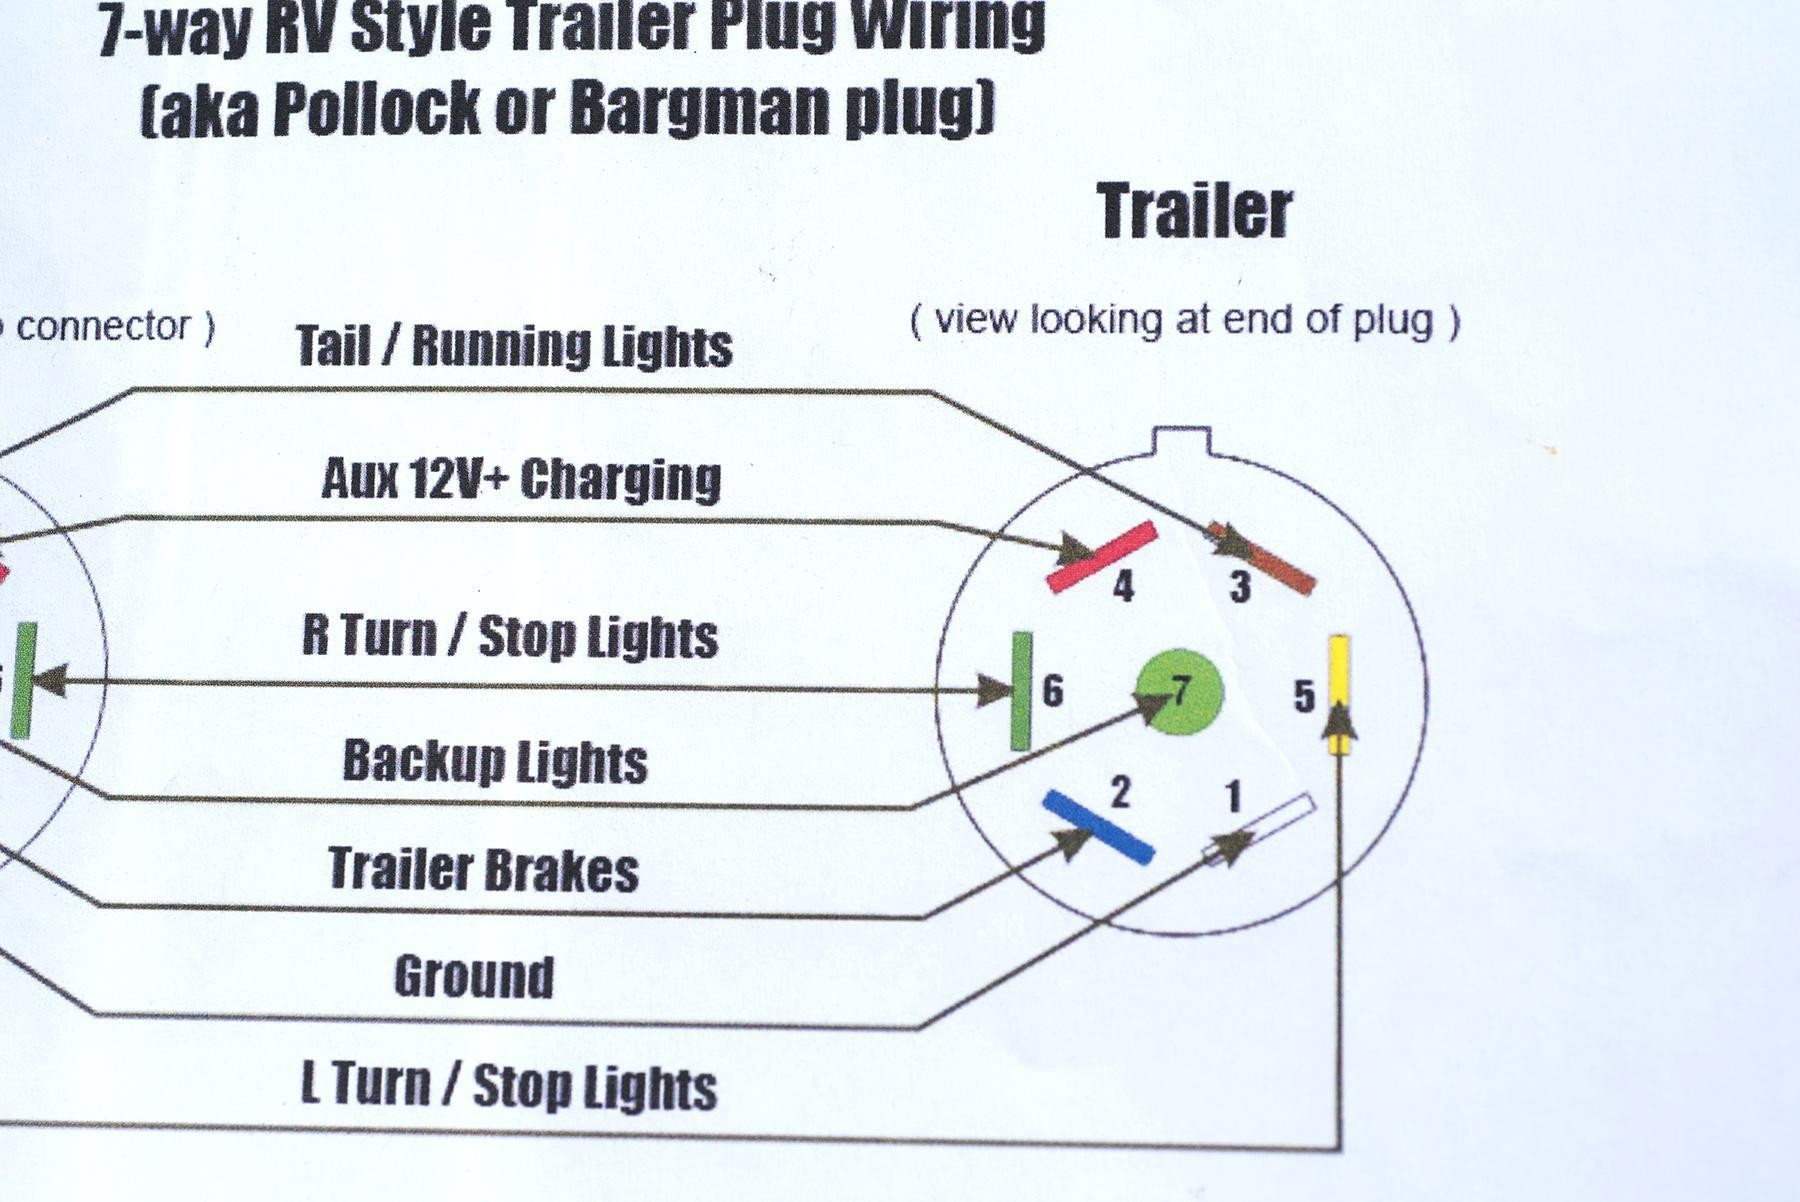 Dodge Ram 7 Pin Wiring Diagram - Data Wiring Diagram Detailed - Dodge Trailer Wiring Diagram 7 Pin